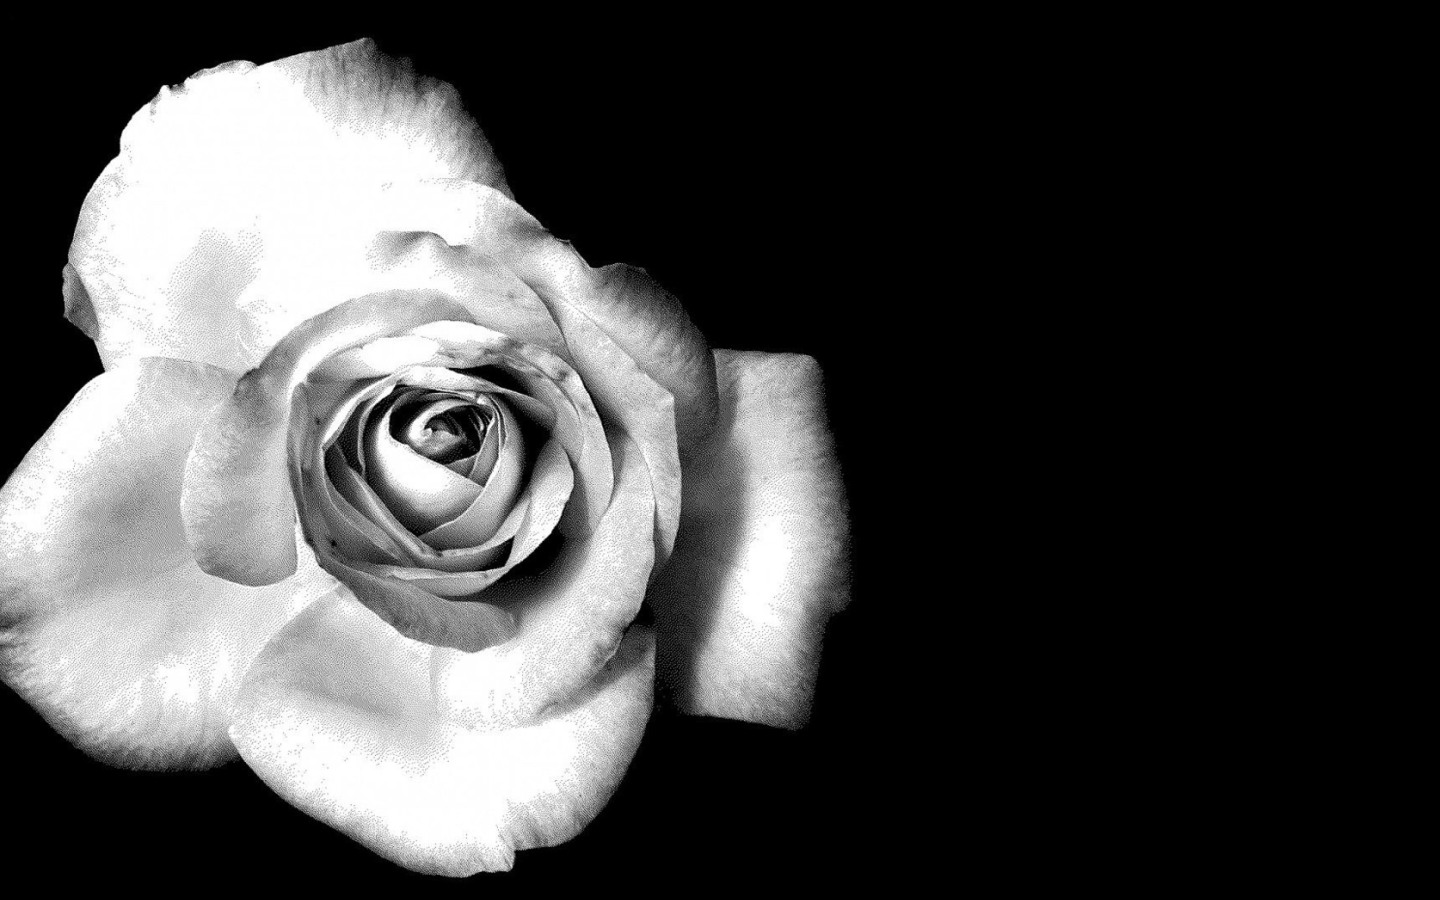 Black and White Flowers wallpaper | 1440x900 | #51484